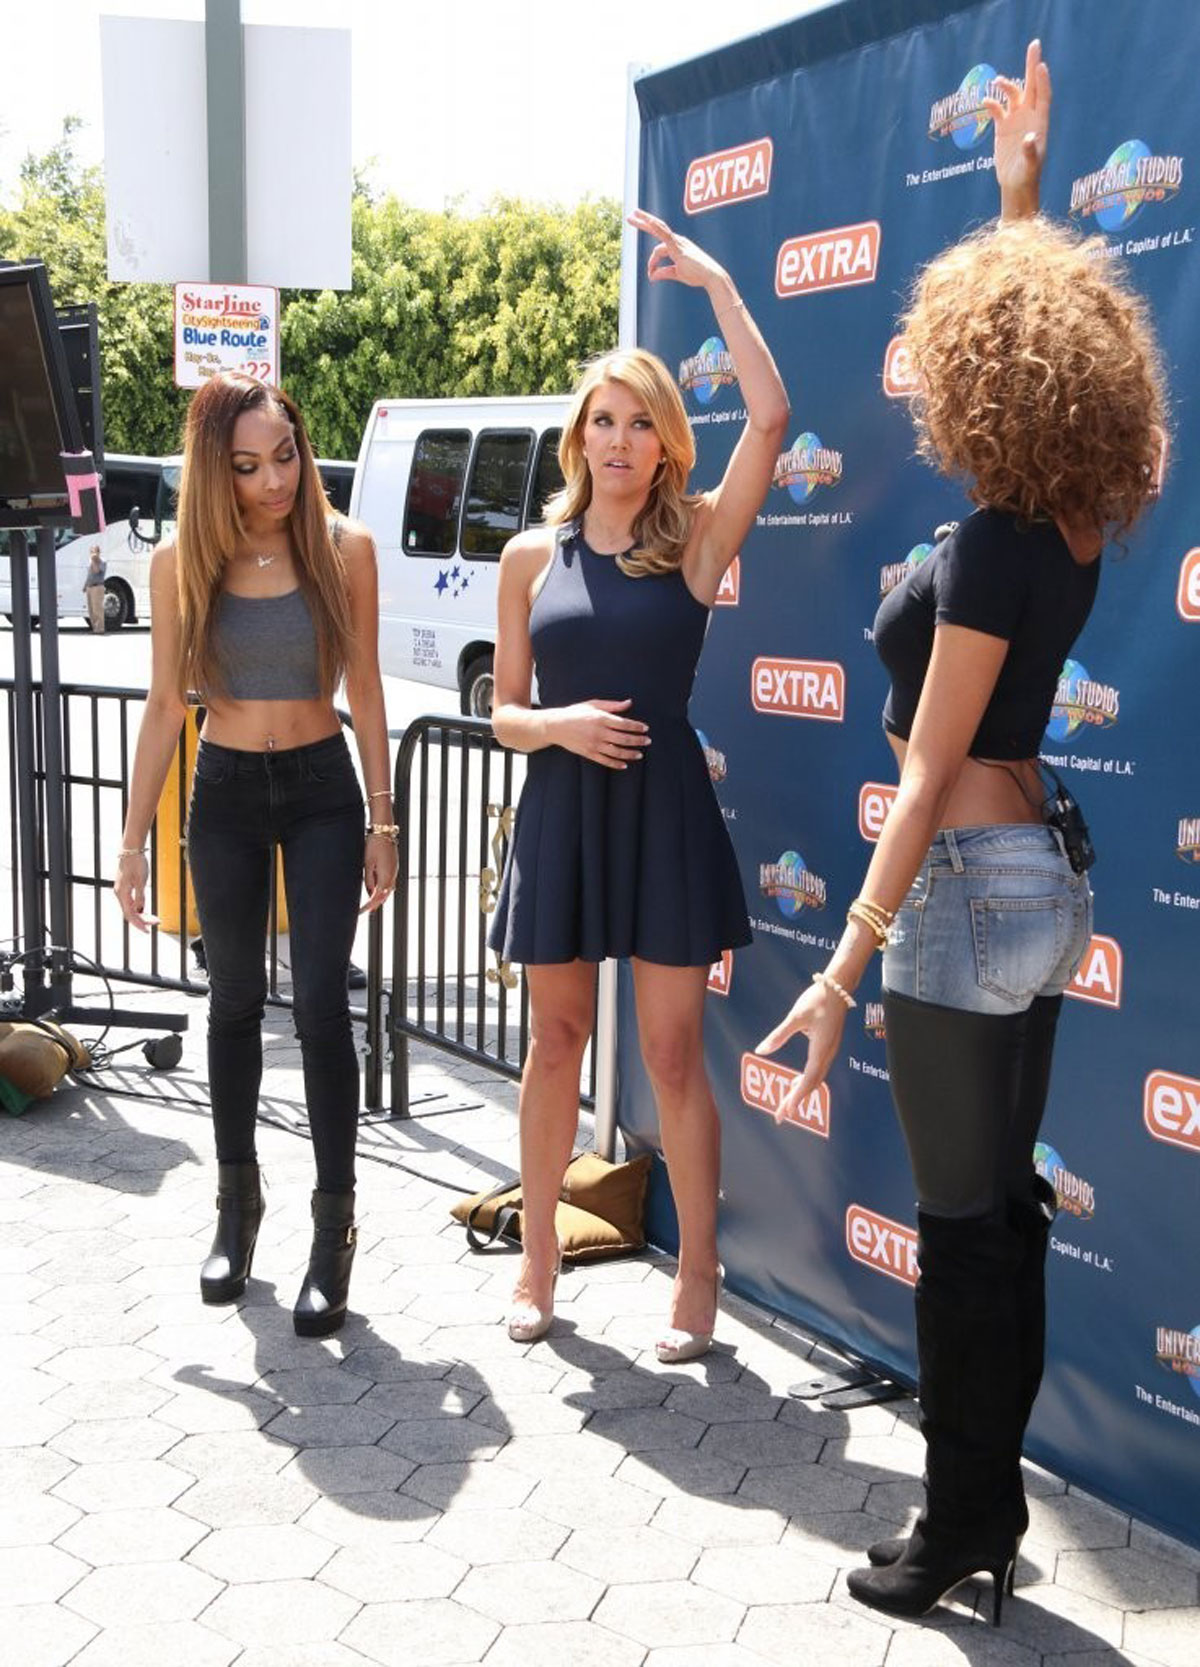 Bria Murphy at Universal Studios to do an interview for the show EXTRA